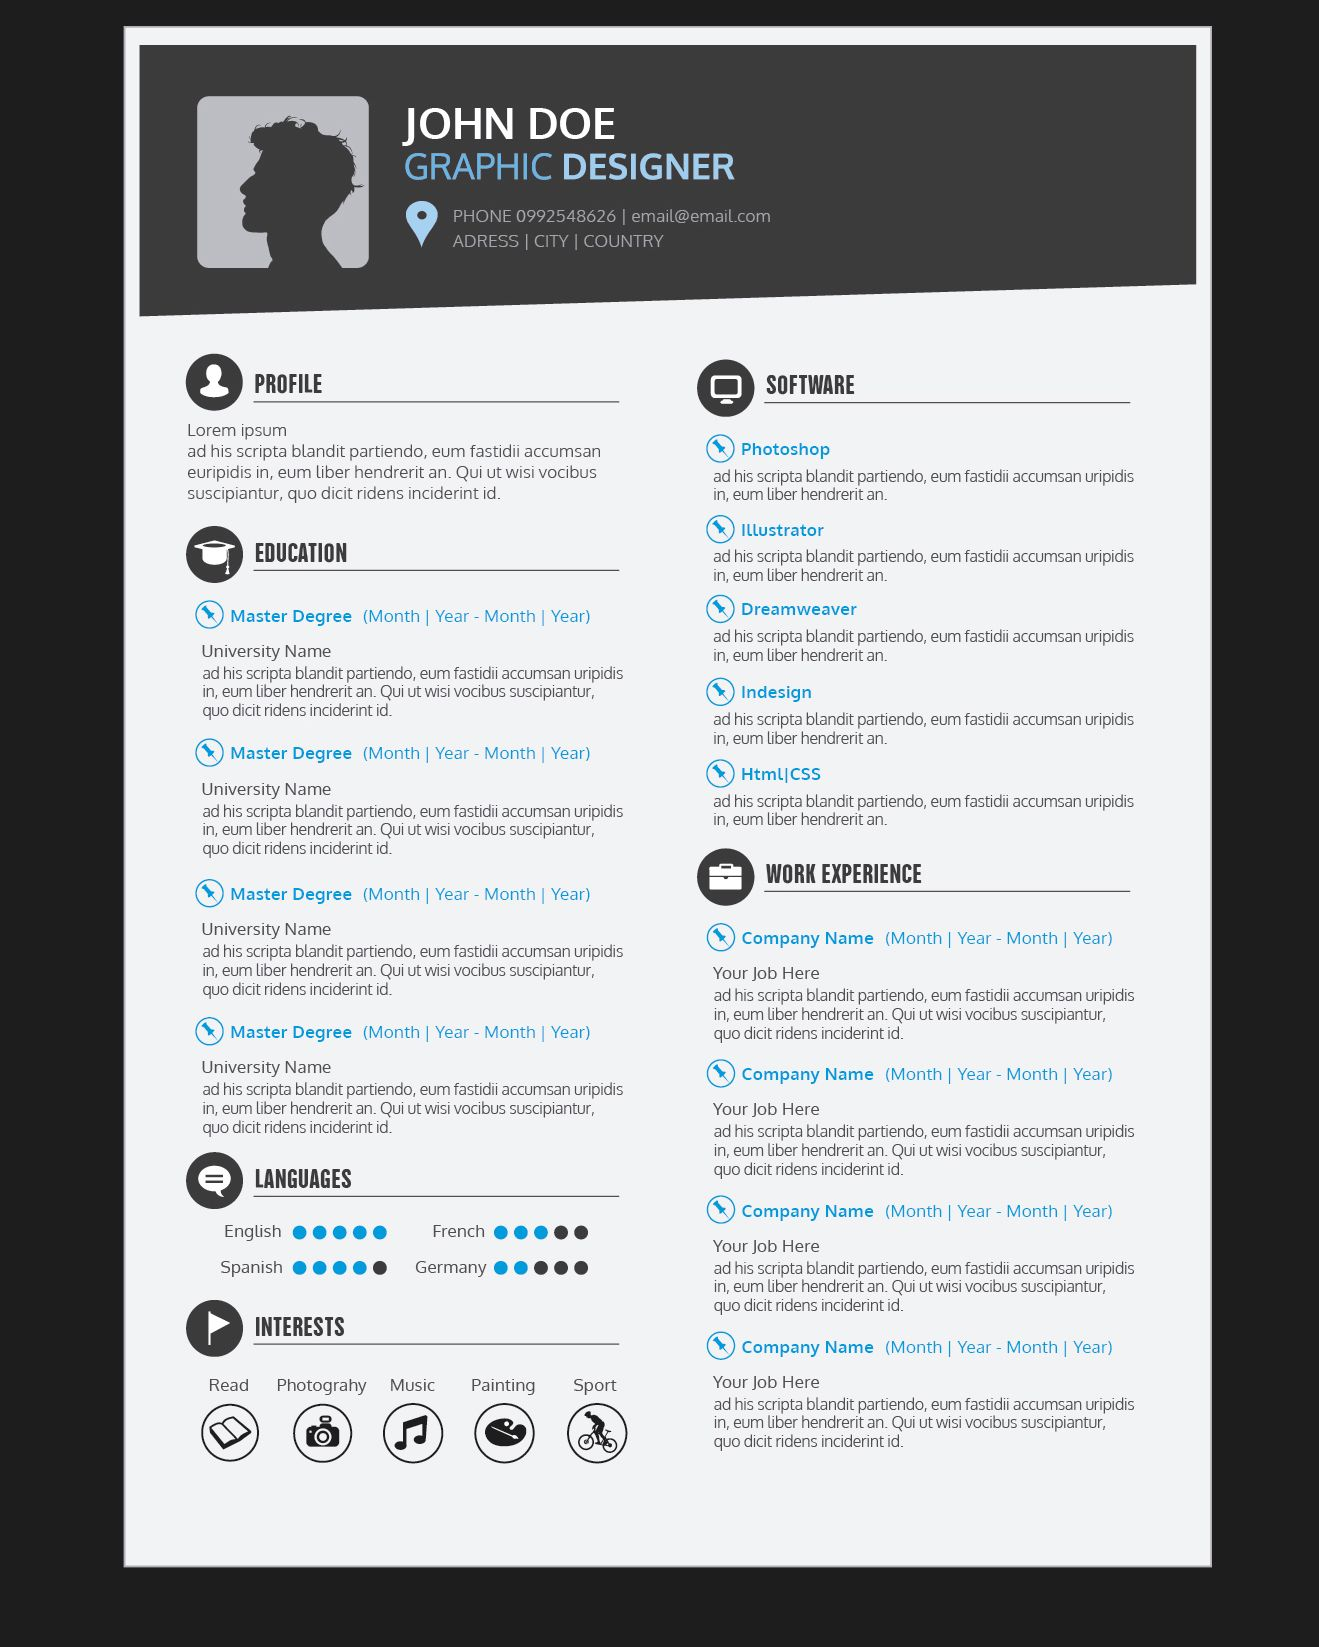 Designer Resume resume design Graphic Designer Resume Cv Vector Download Visual Designer Resume